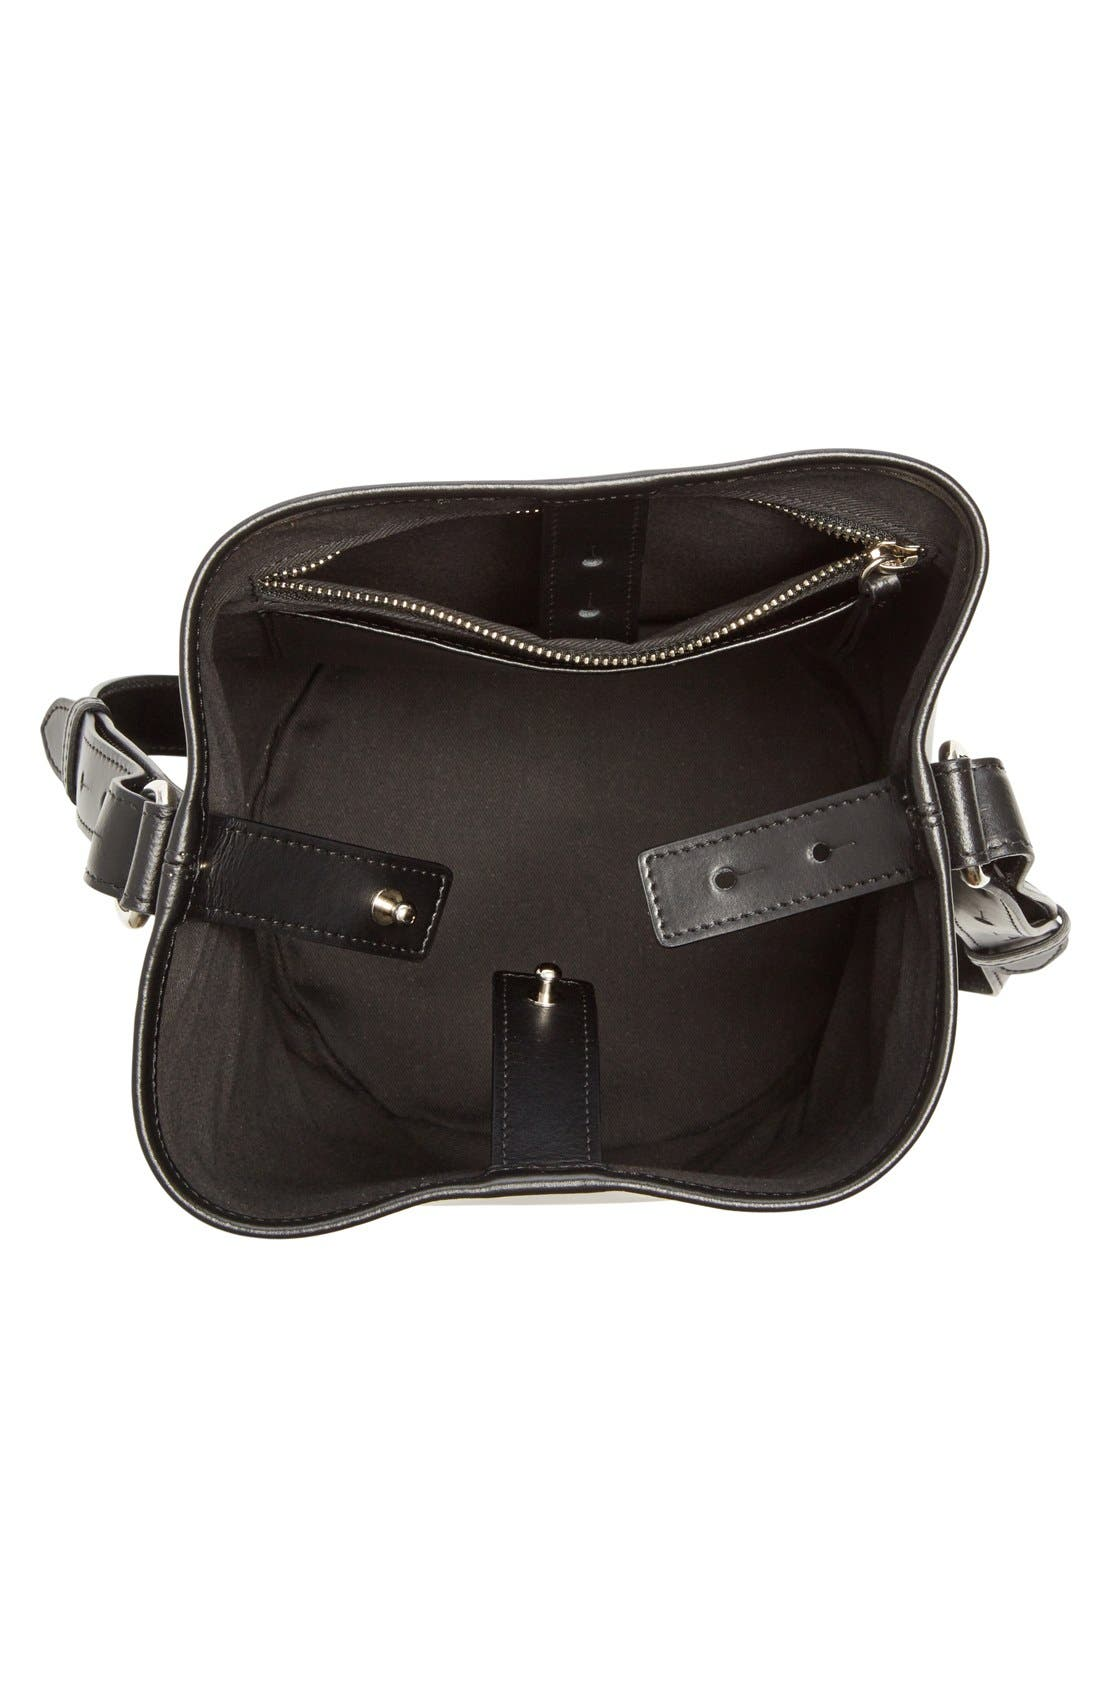 Small Leather Bucket Bag,                             Alternate thumbnail 3, color,                             Black